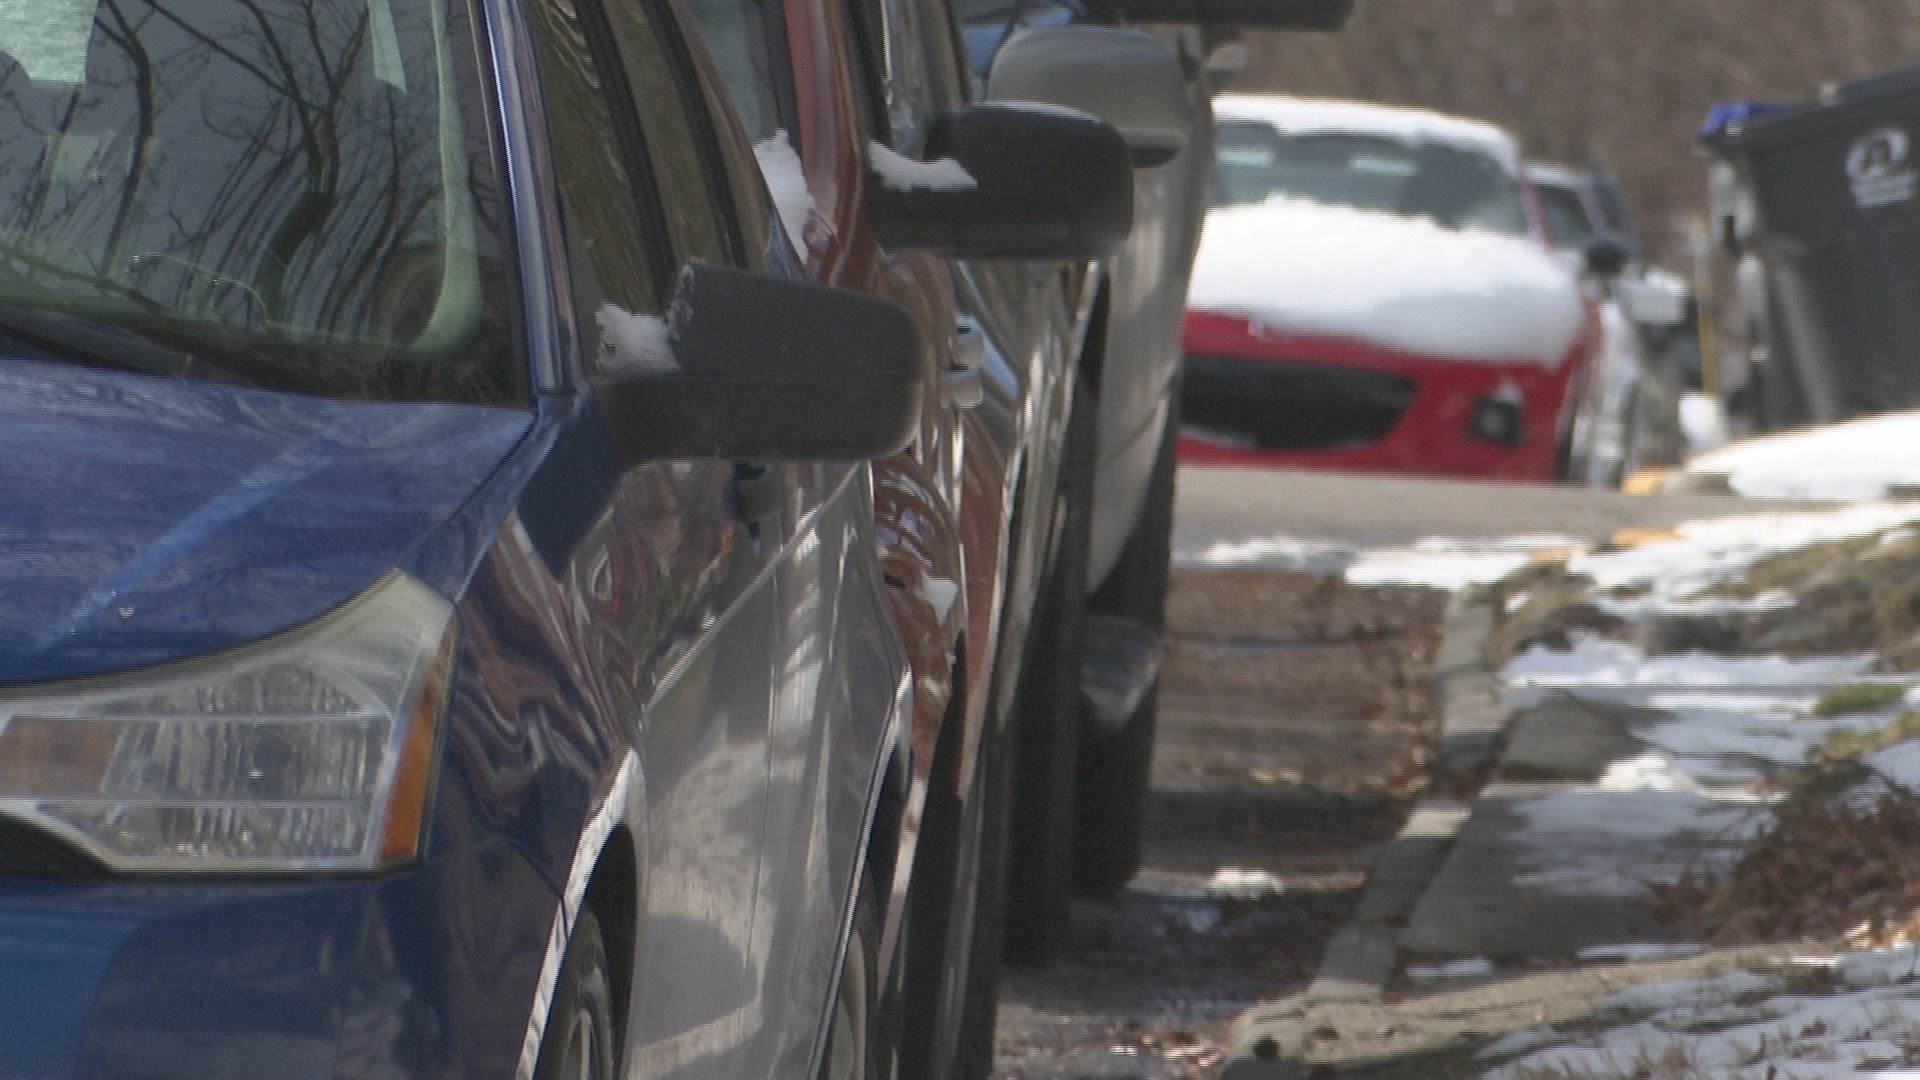 winter weather brings uptick in vehicle thefts wane 15 winter weather brings uptick in vehicle